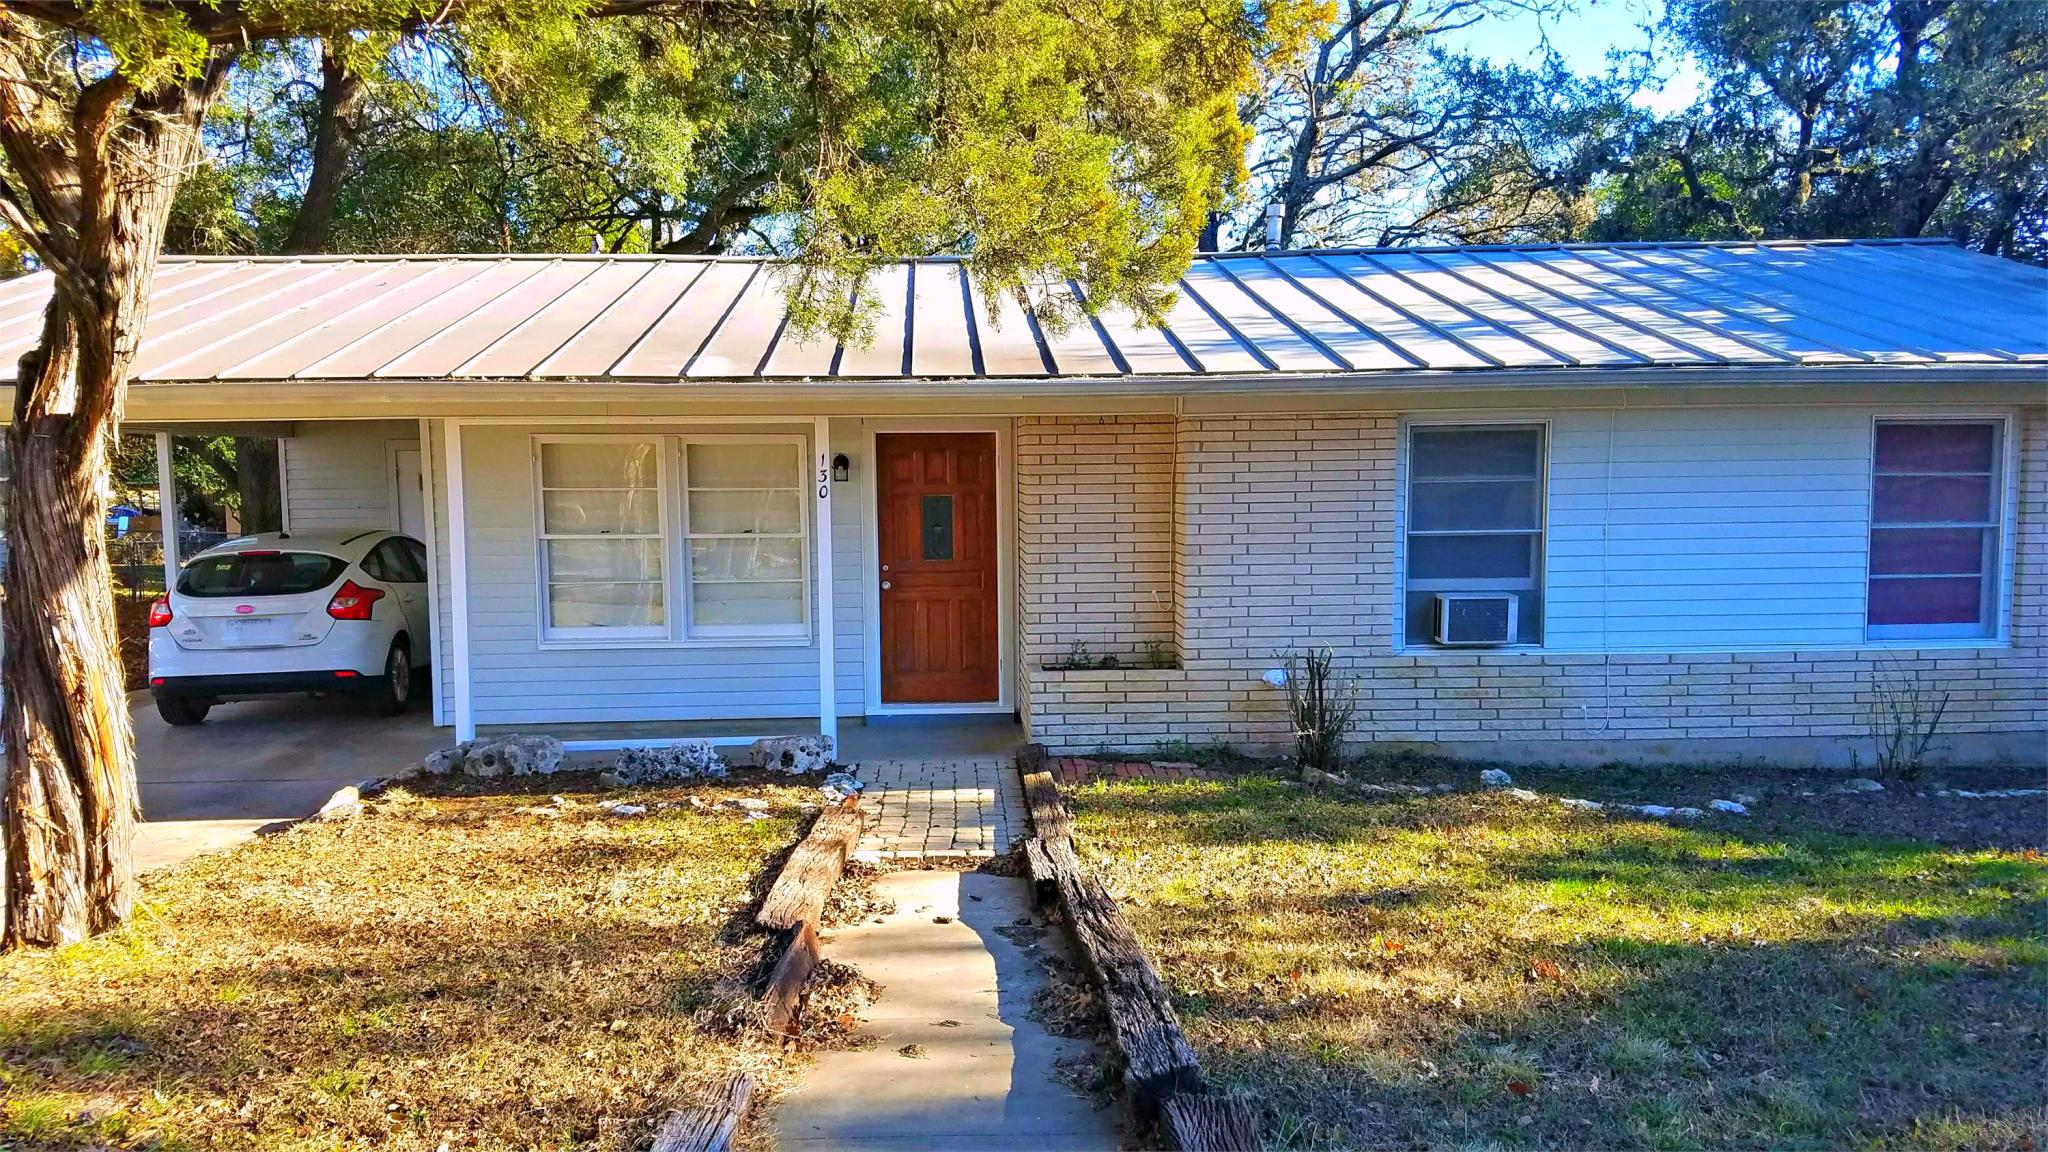 130 e holland st for rent san marcos tx trulia